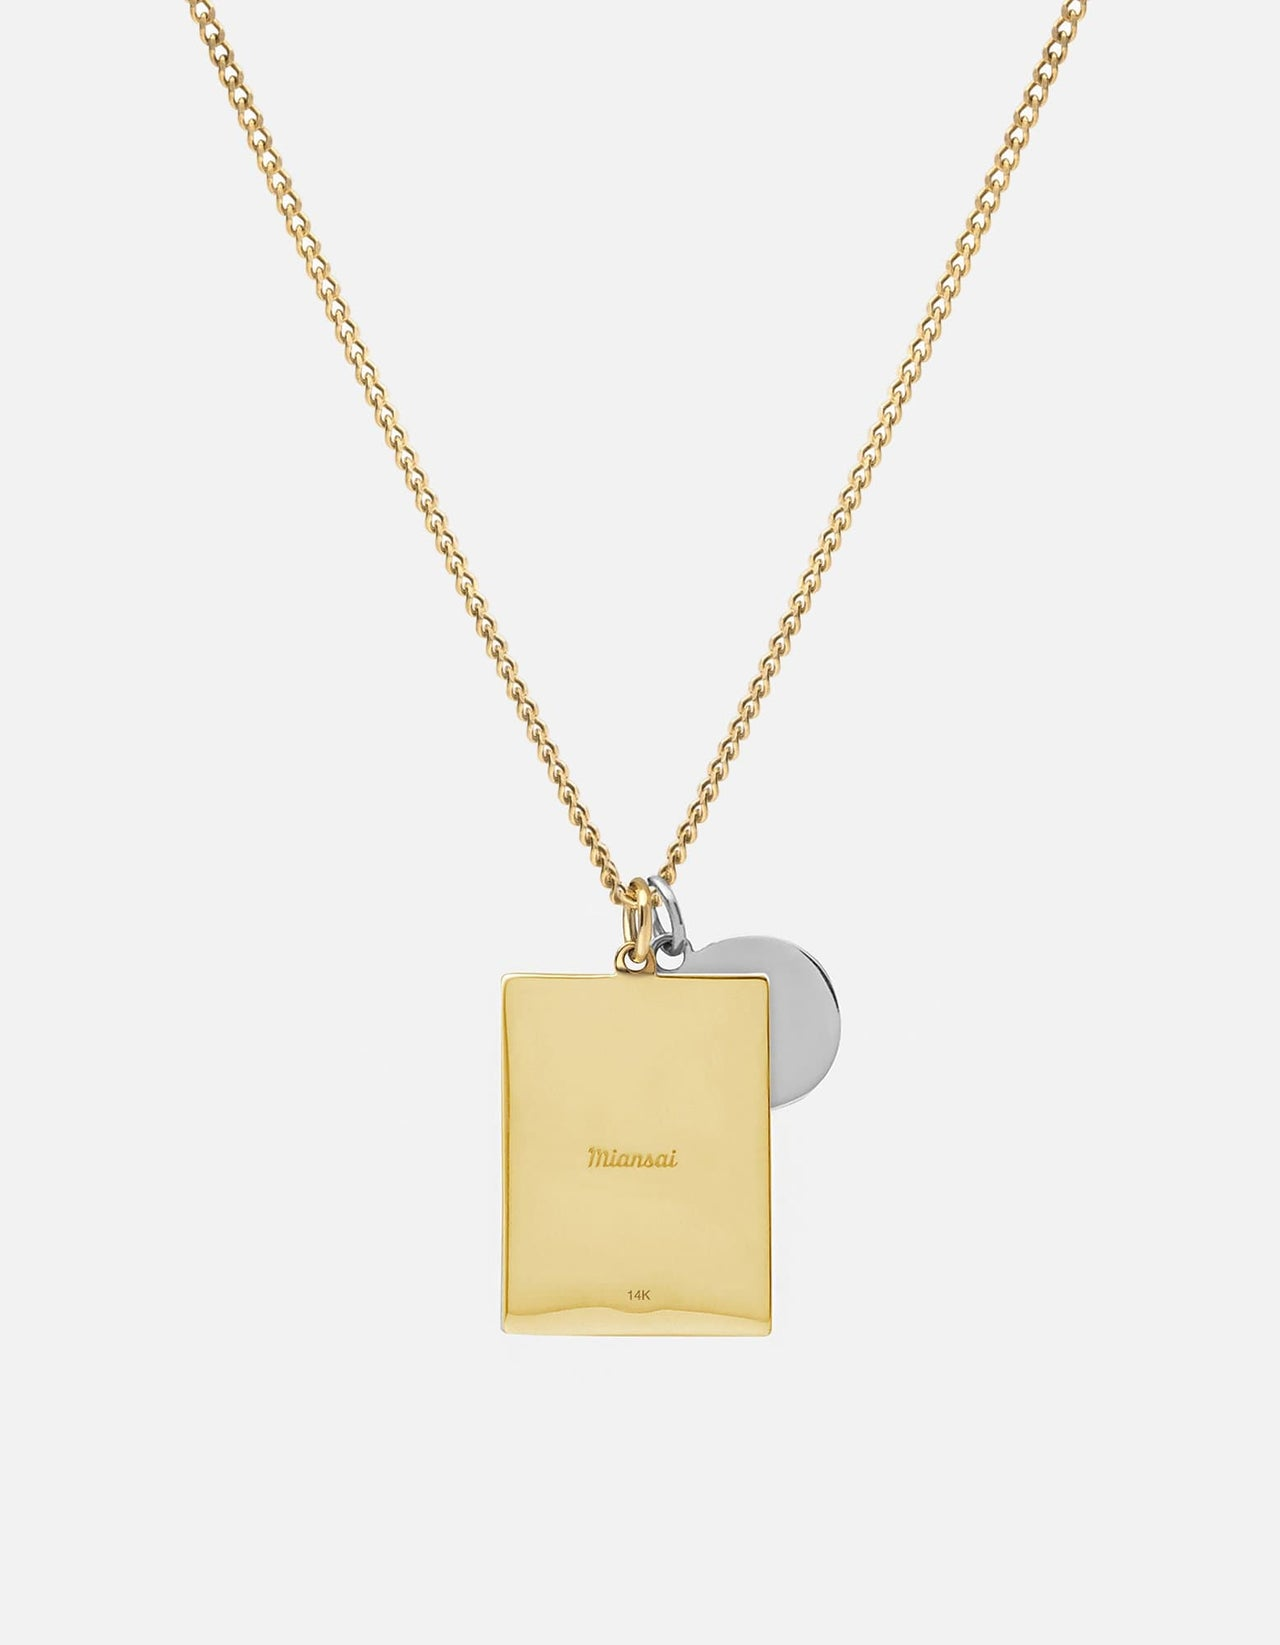 14K Yellow Gold Bird Pendant on an Adjustable 14K Yellow Gold Chain Necklace